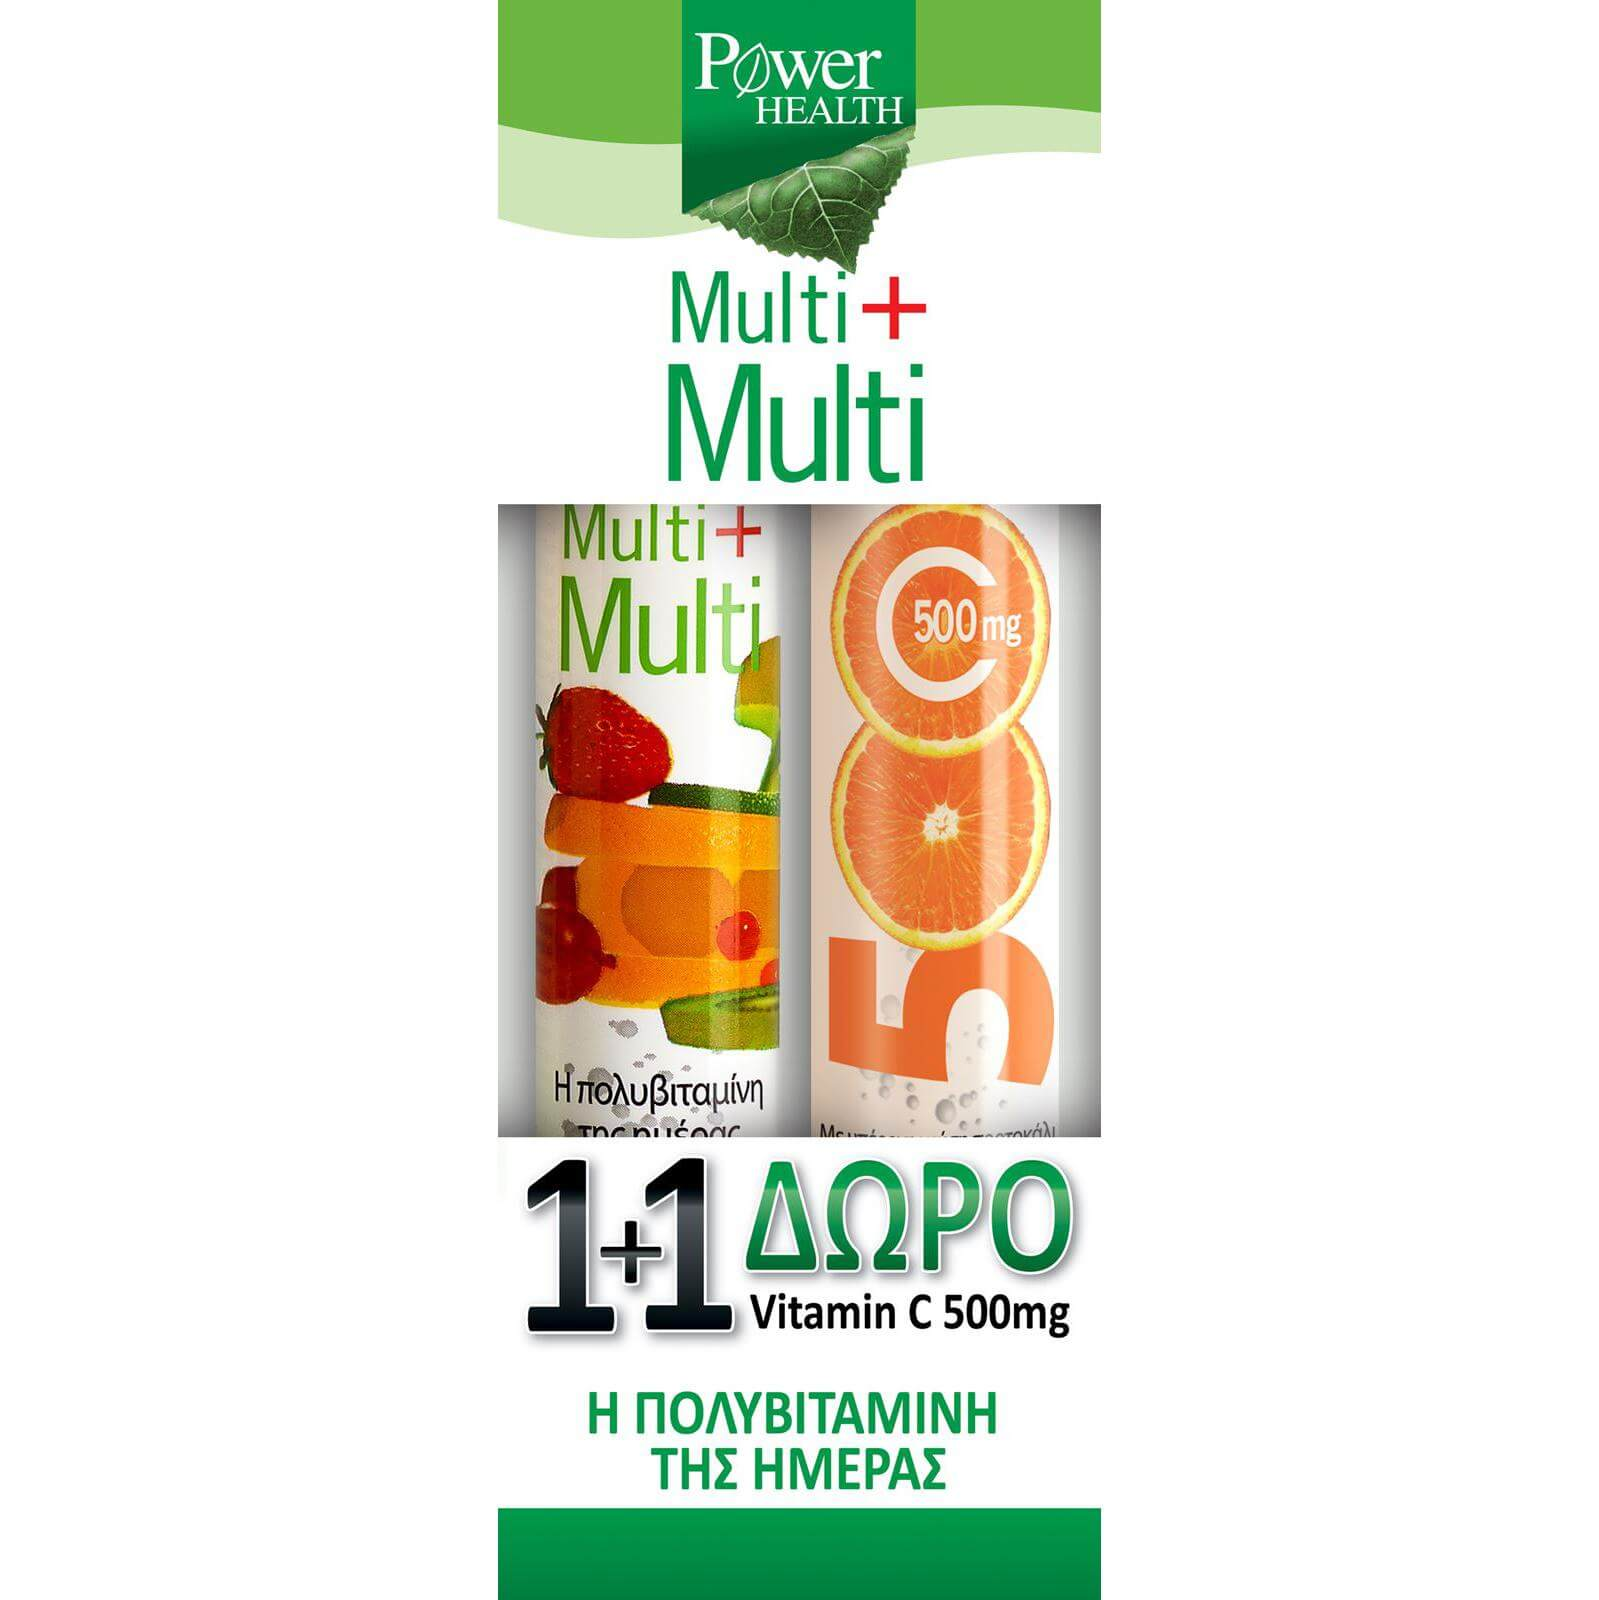 Power Health Multi + Multi 20effer.tabs + 4effer.tabs Δώρο & Vitamin C 20effer.tabs